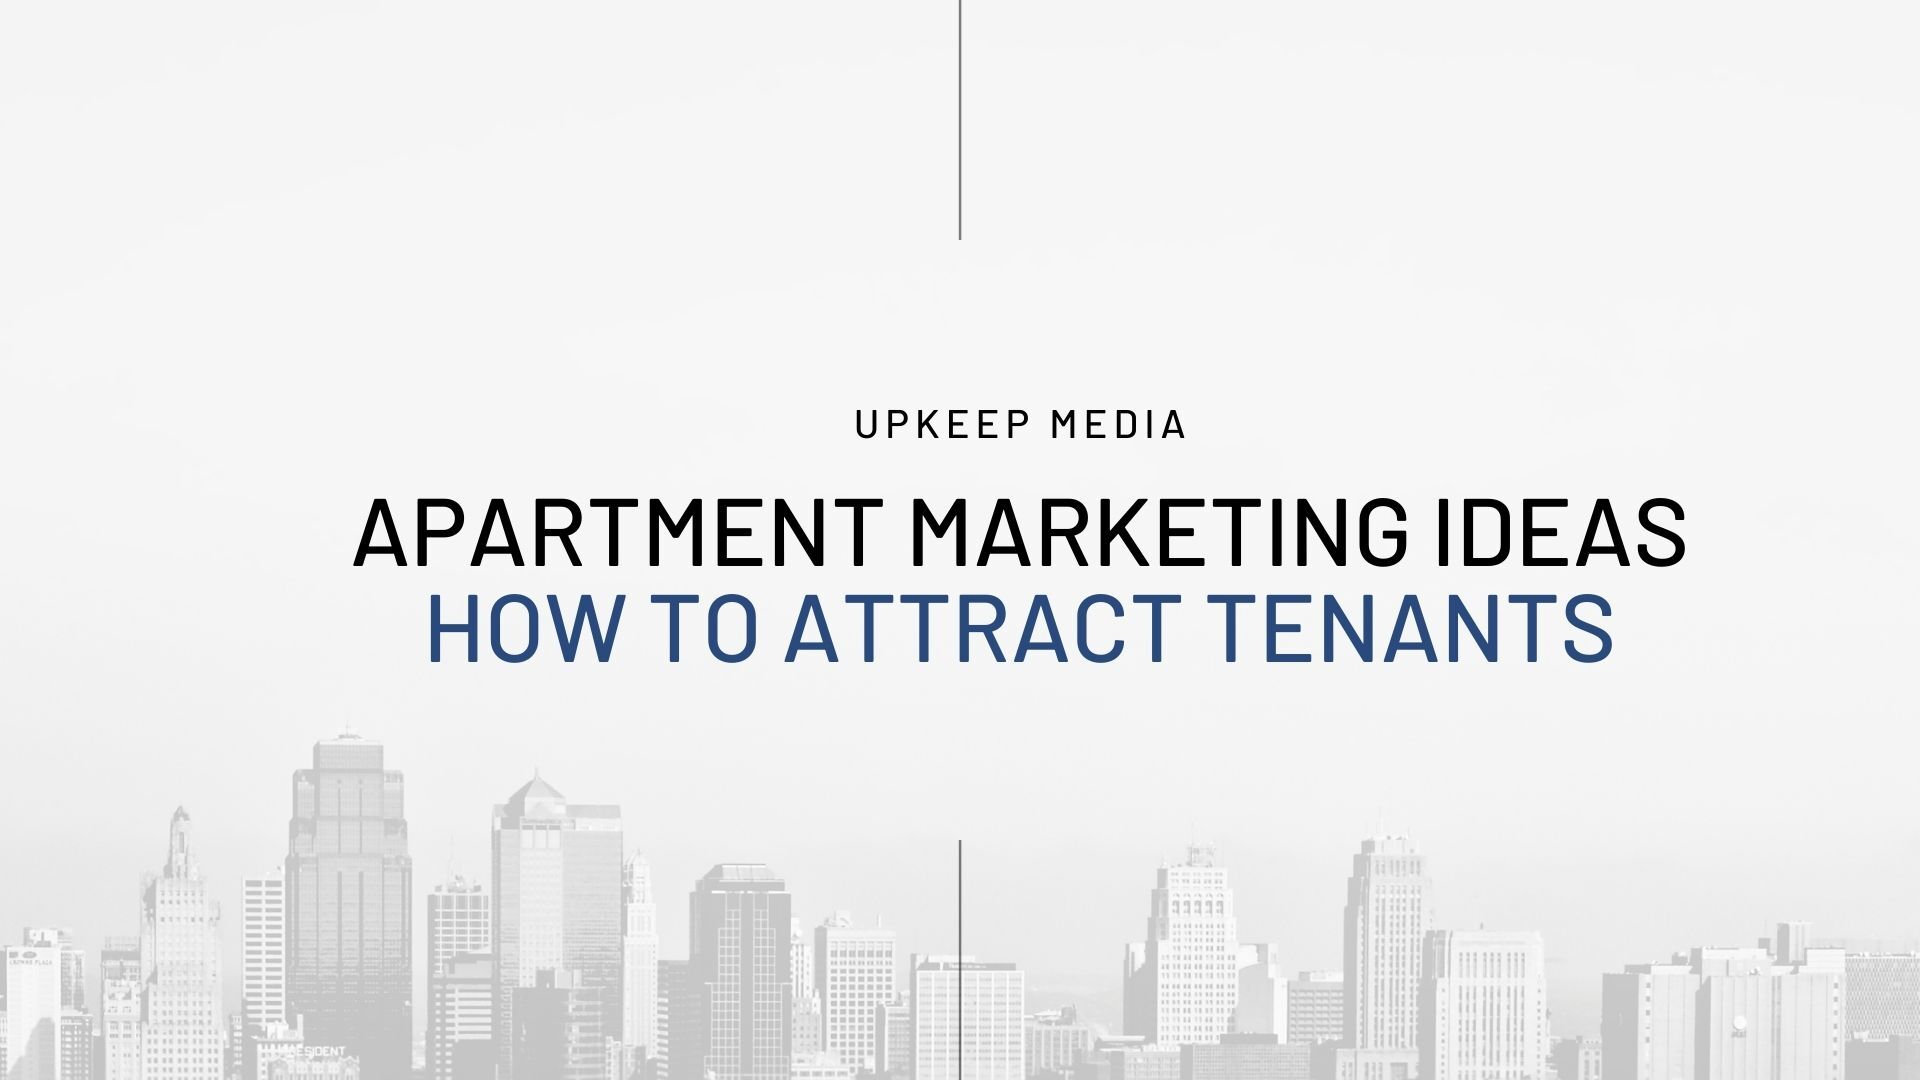 10 Advertising Ideas for Apartments